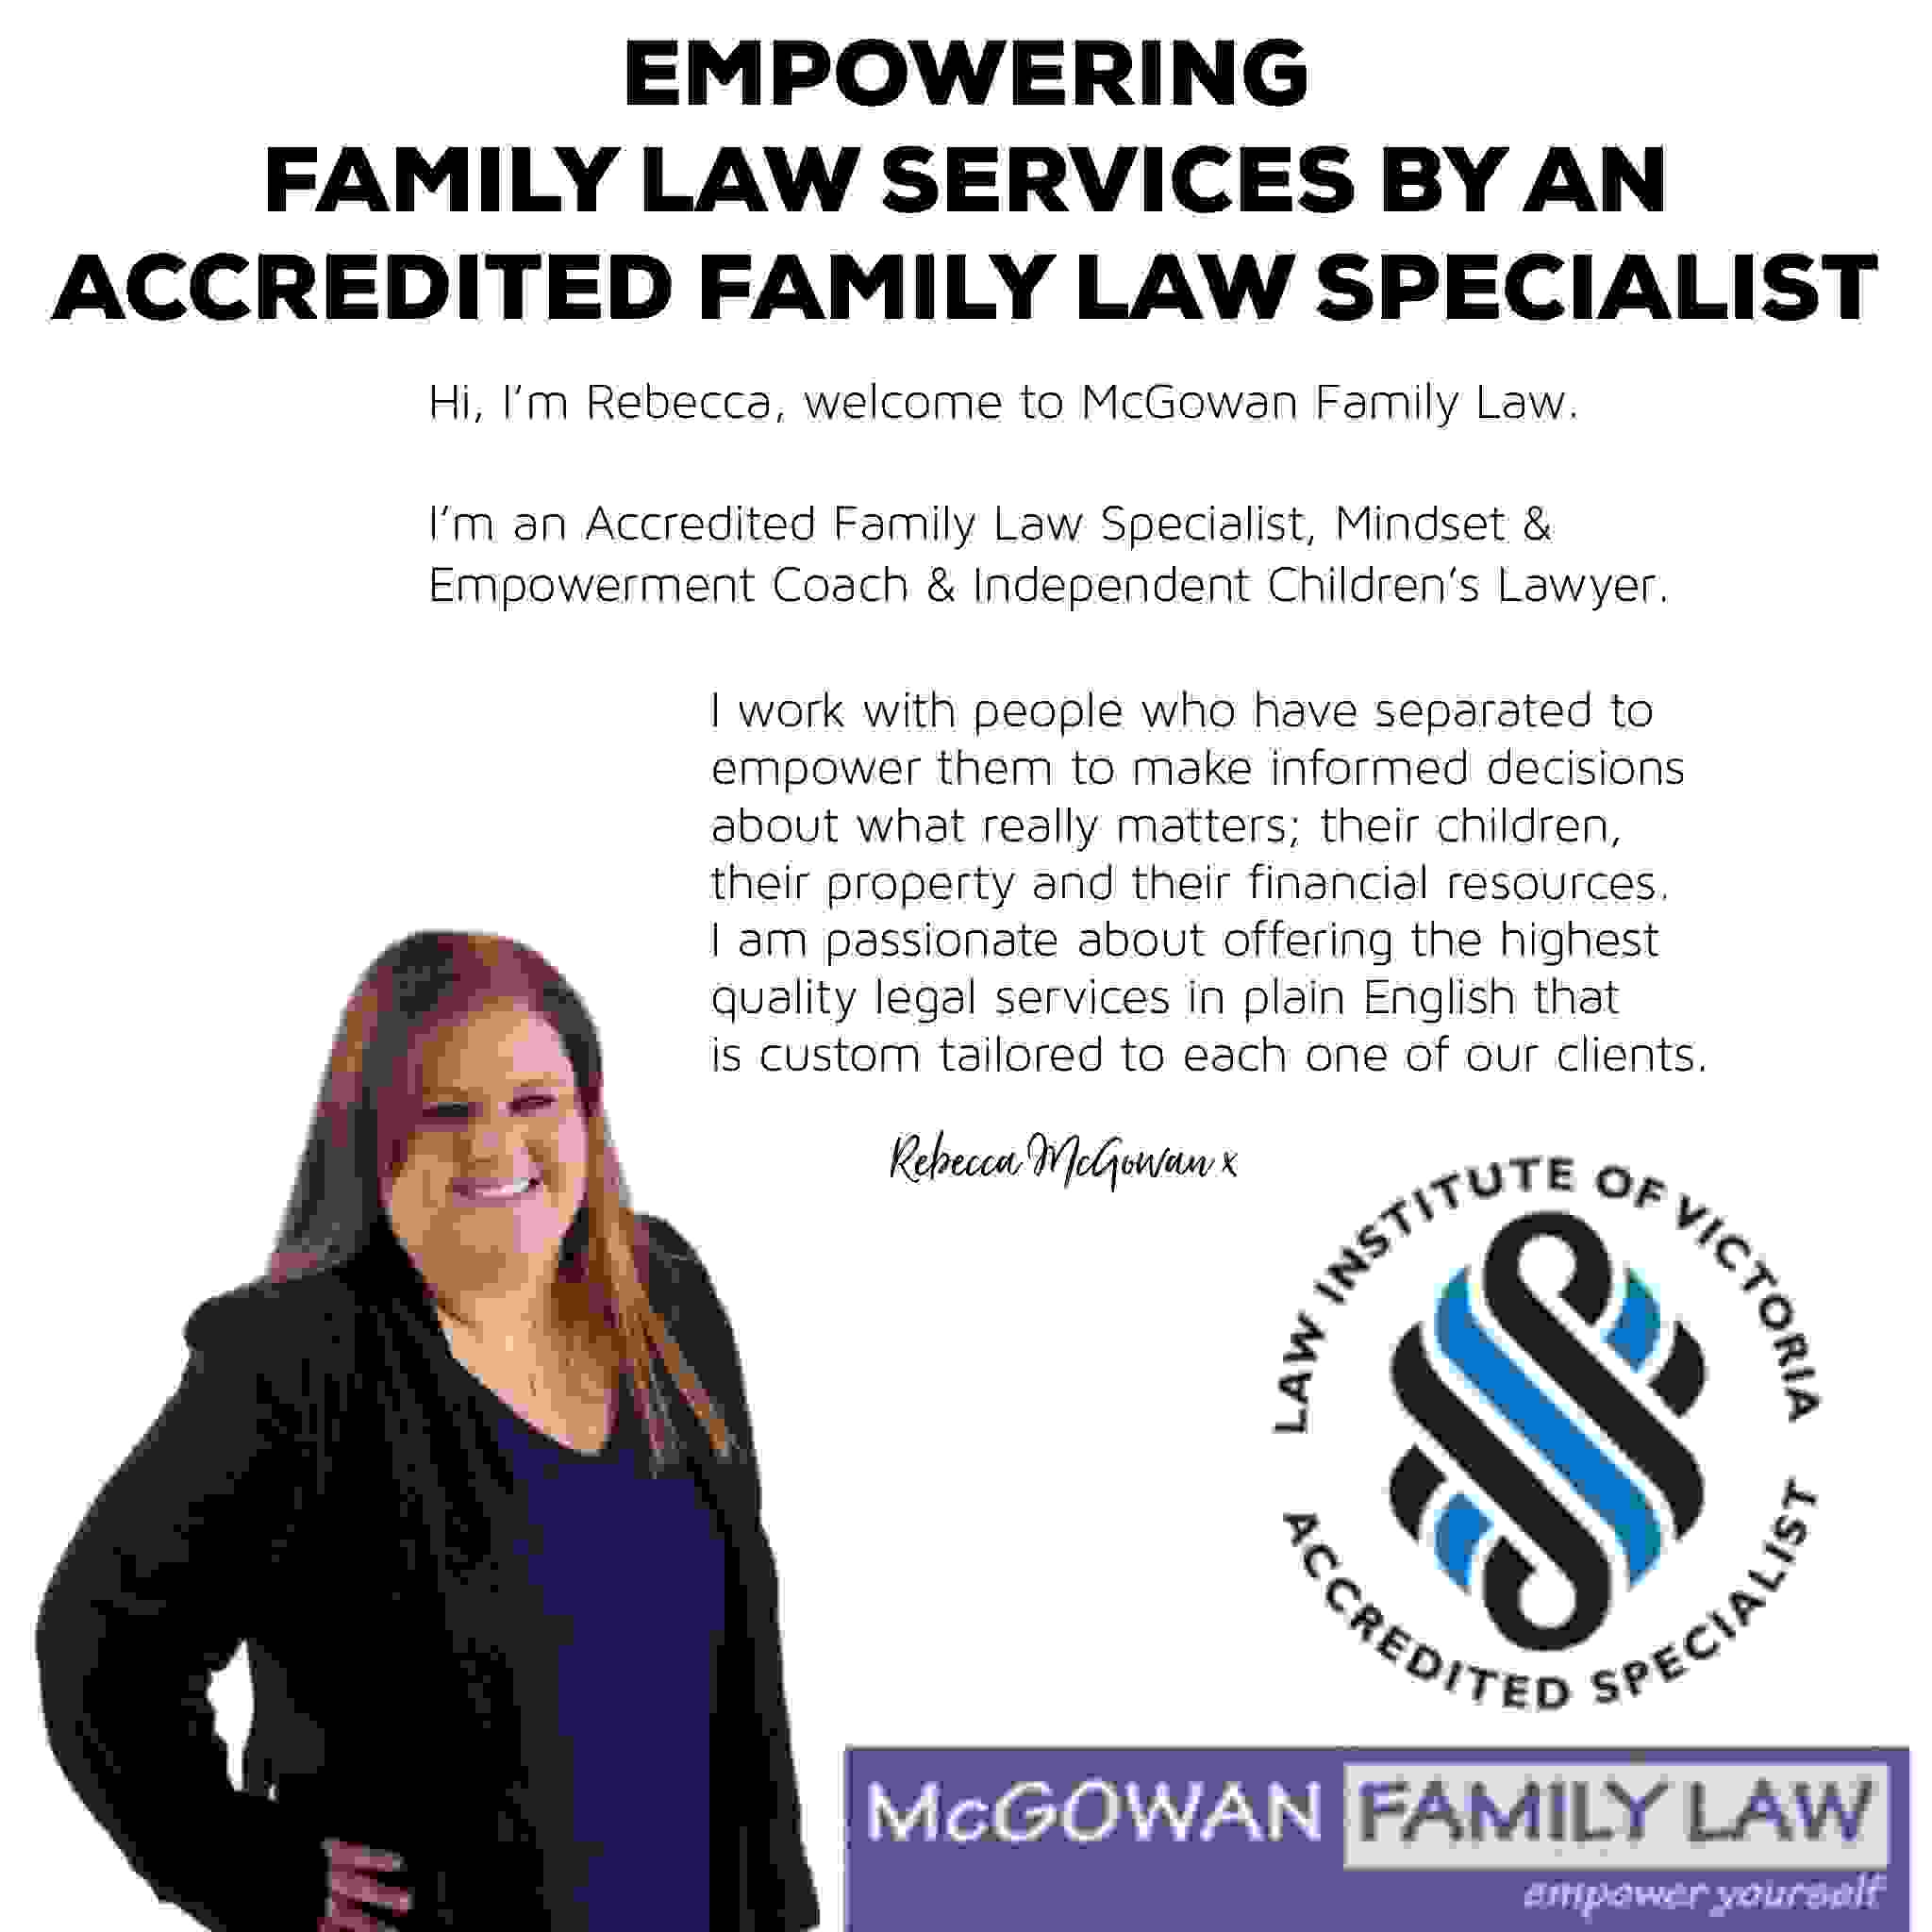 #mcgowanfamilylaw #specialist #familylaw #divorce #separation #theseparationcoach #rebeccamcgowan